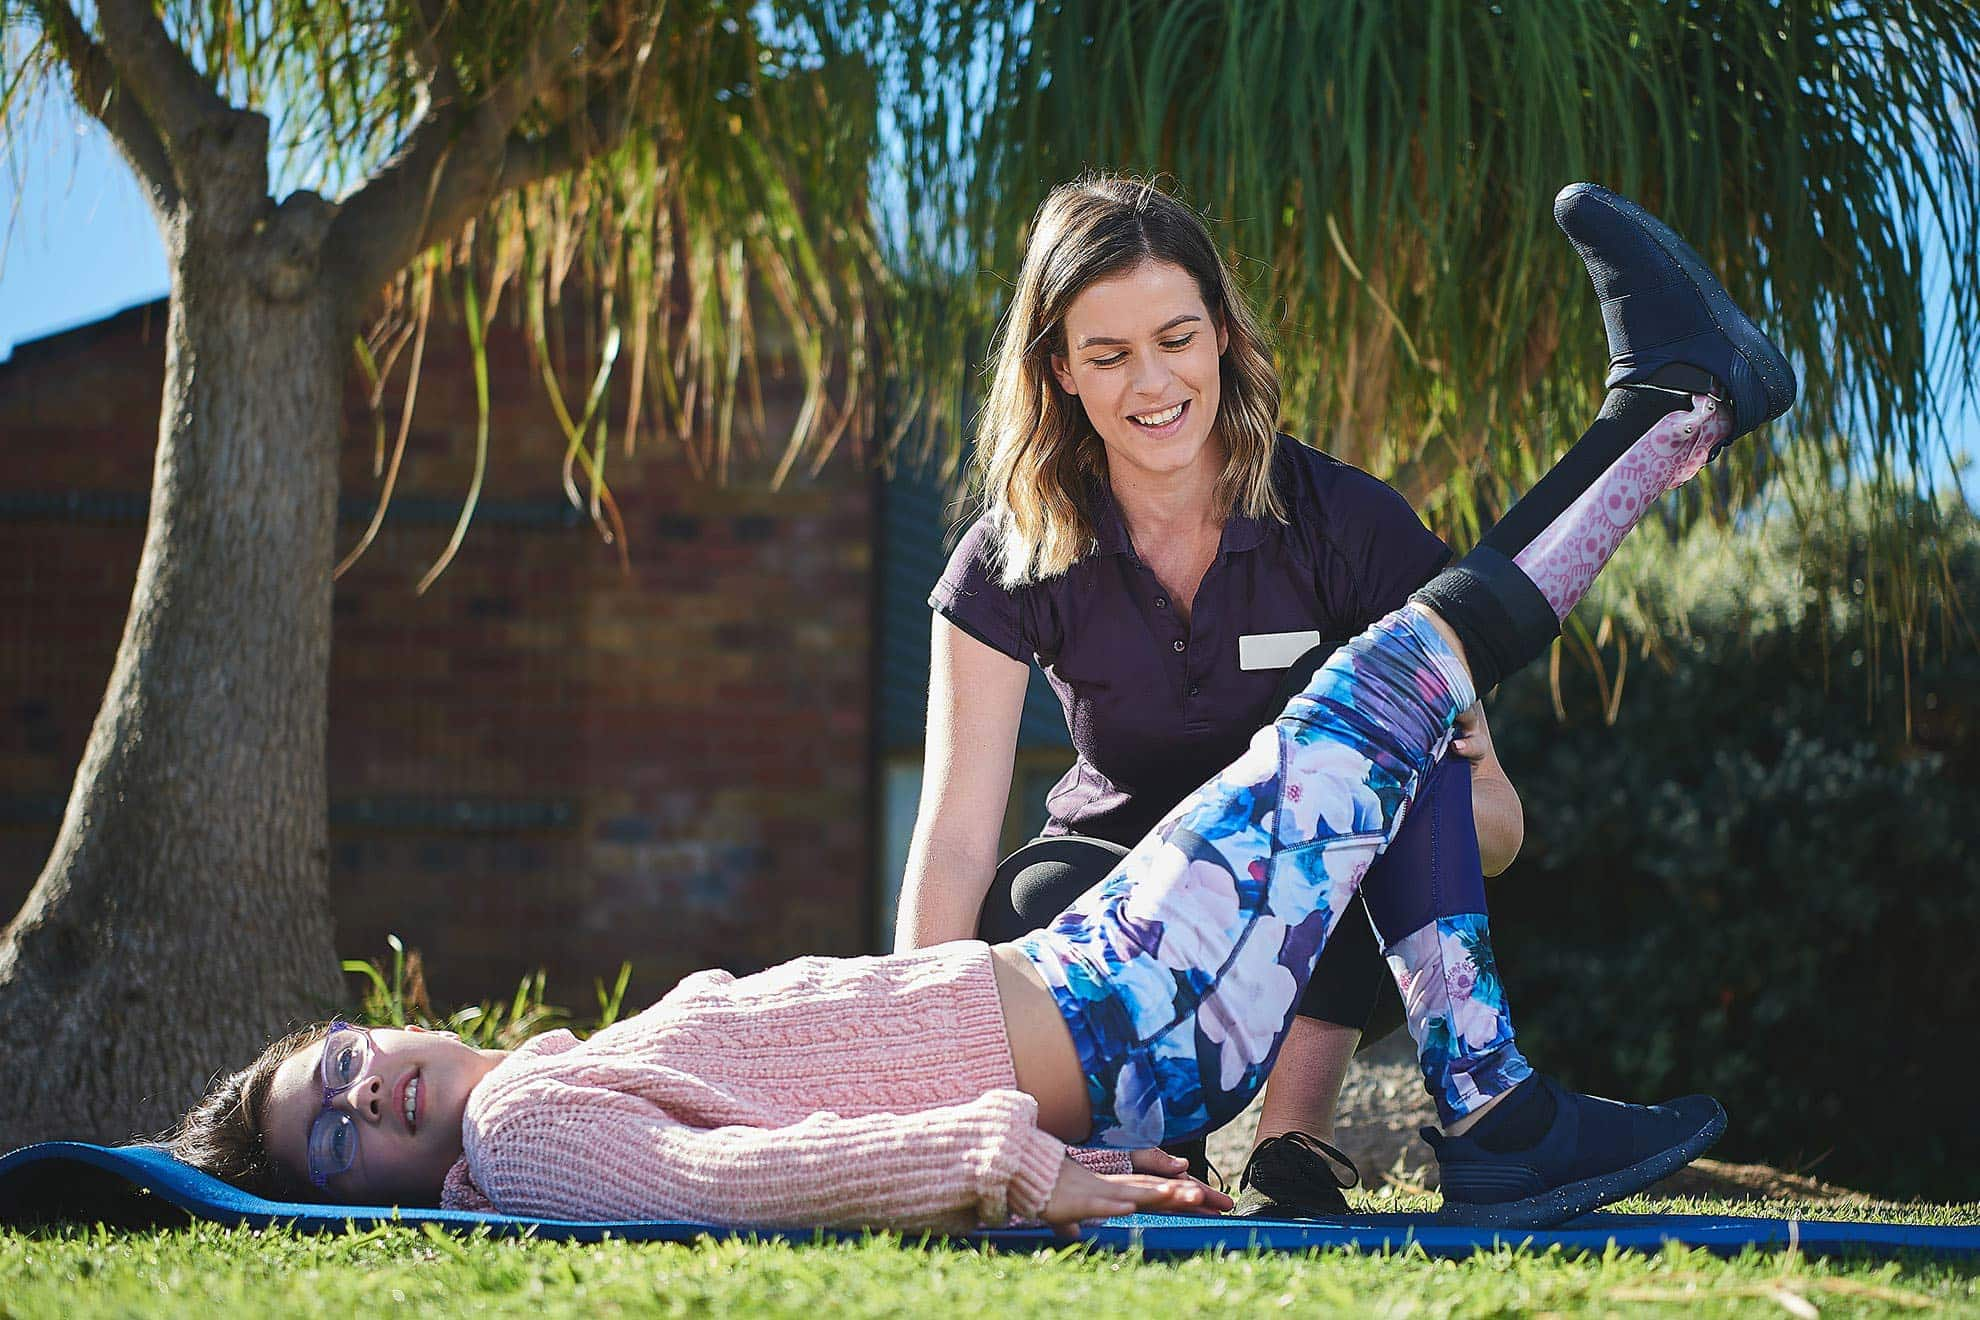 A physiotherapist helping a girl do an exercise